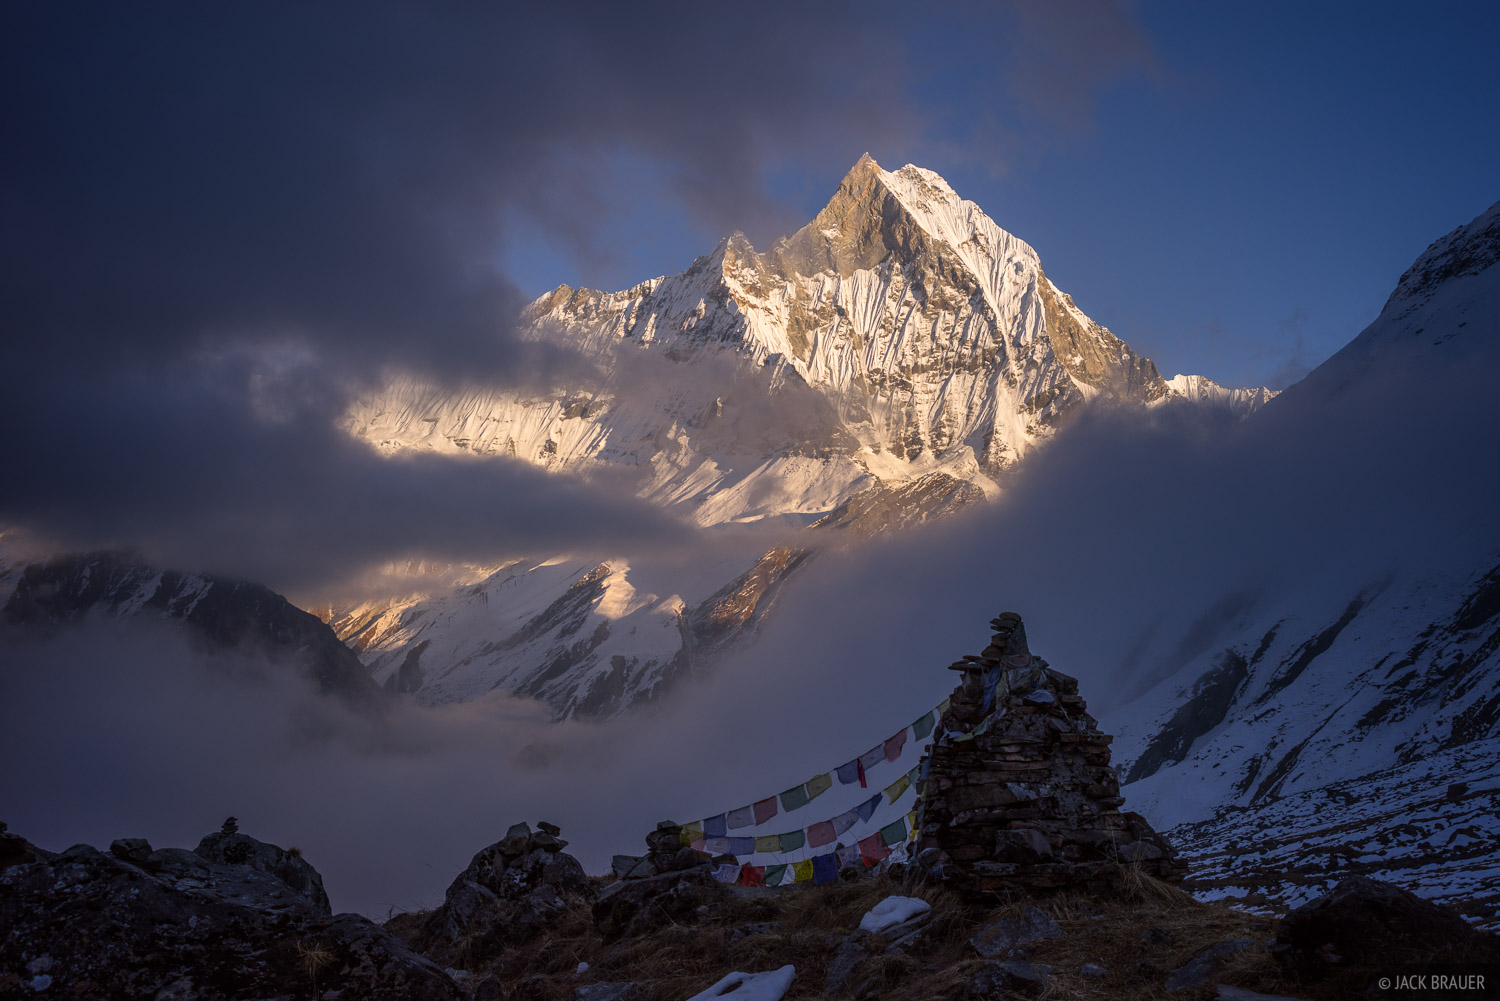 Himalaya,Machhapuchhre,Nepal, Annapurna Base Camp, photo